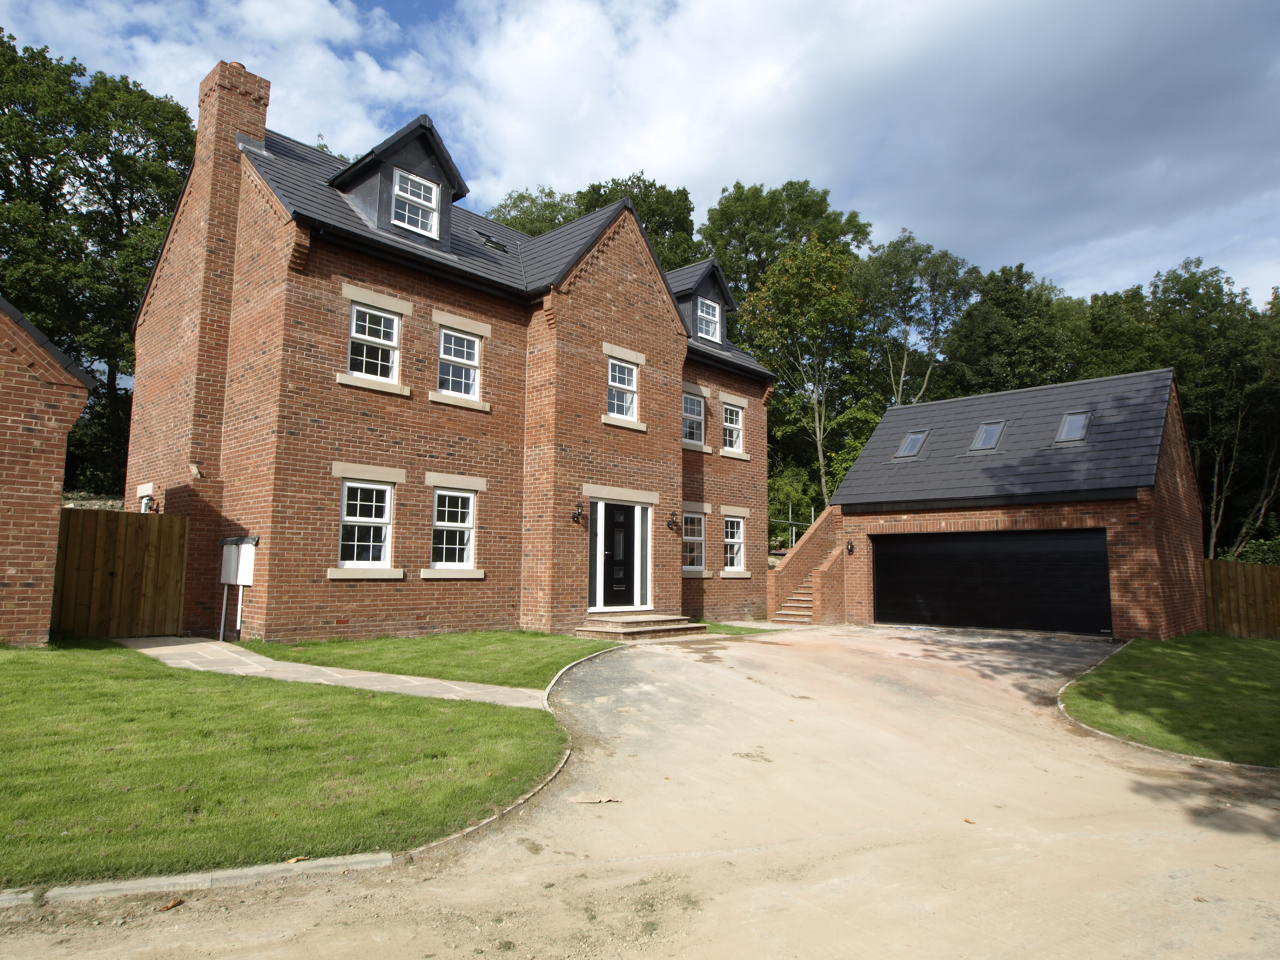 Keresforth Hill Road Barnsley S70 5 Bedroom Detached House For Full Brick Brand New Home On Wiring To Garage Sale 48136910 Primelocation